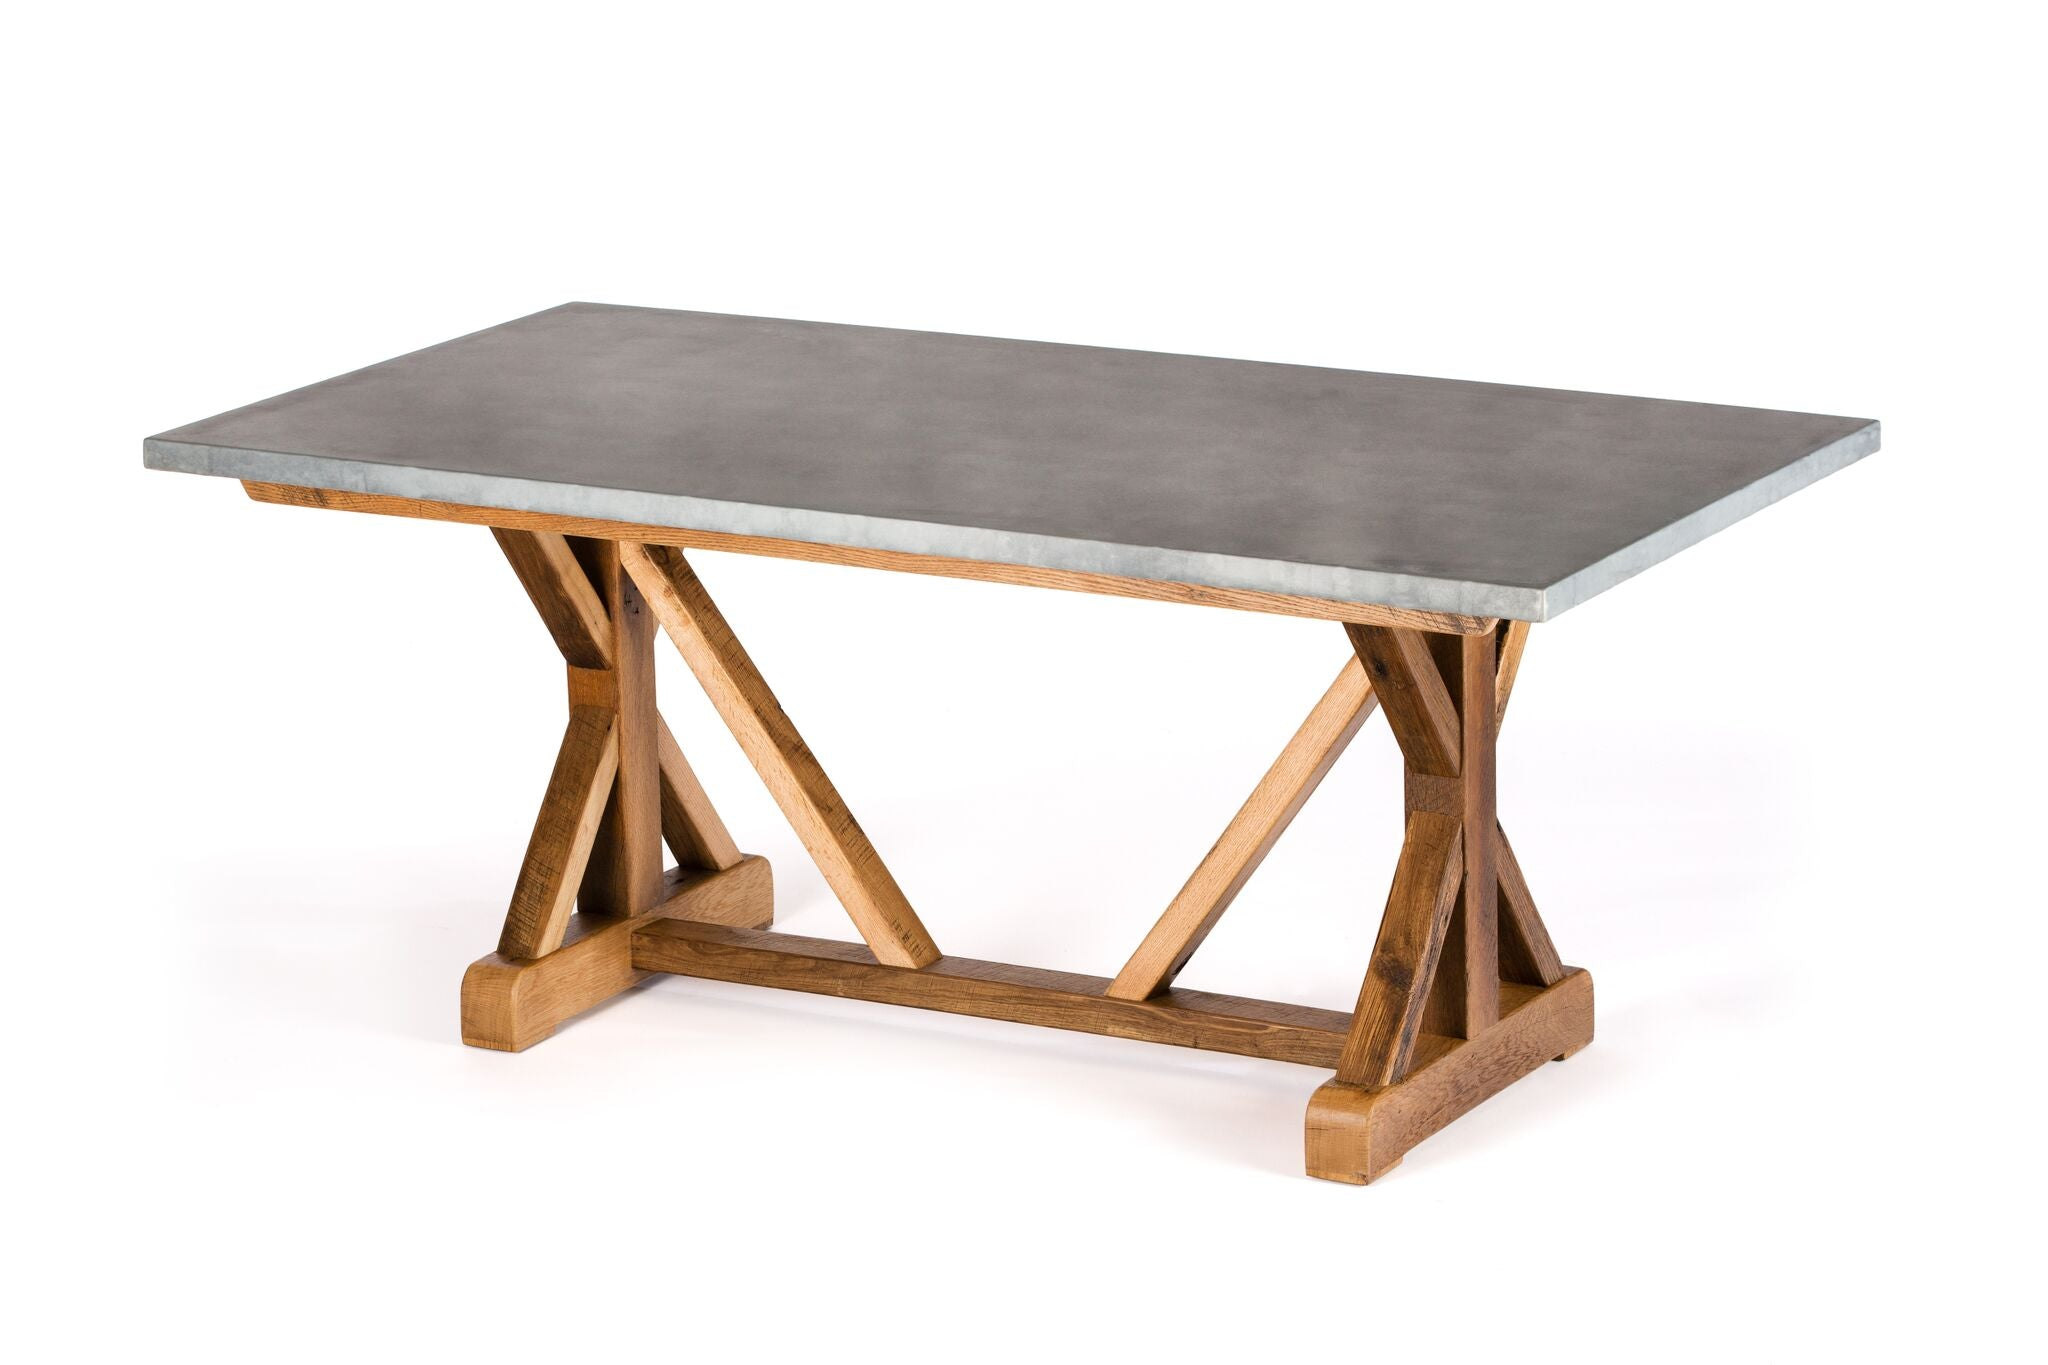 "Zinc Rectangular Table | French Trestle Table | CLASSIC | Weathered Grey on Reclaimed Oak | CUSTOM SIZE 48""L 37""W 30""H 